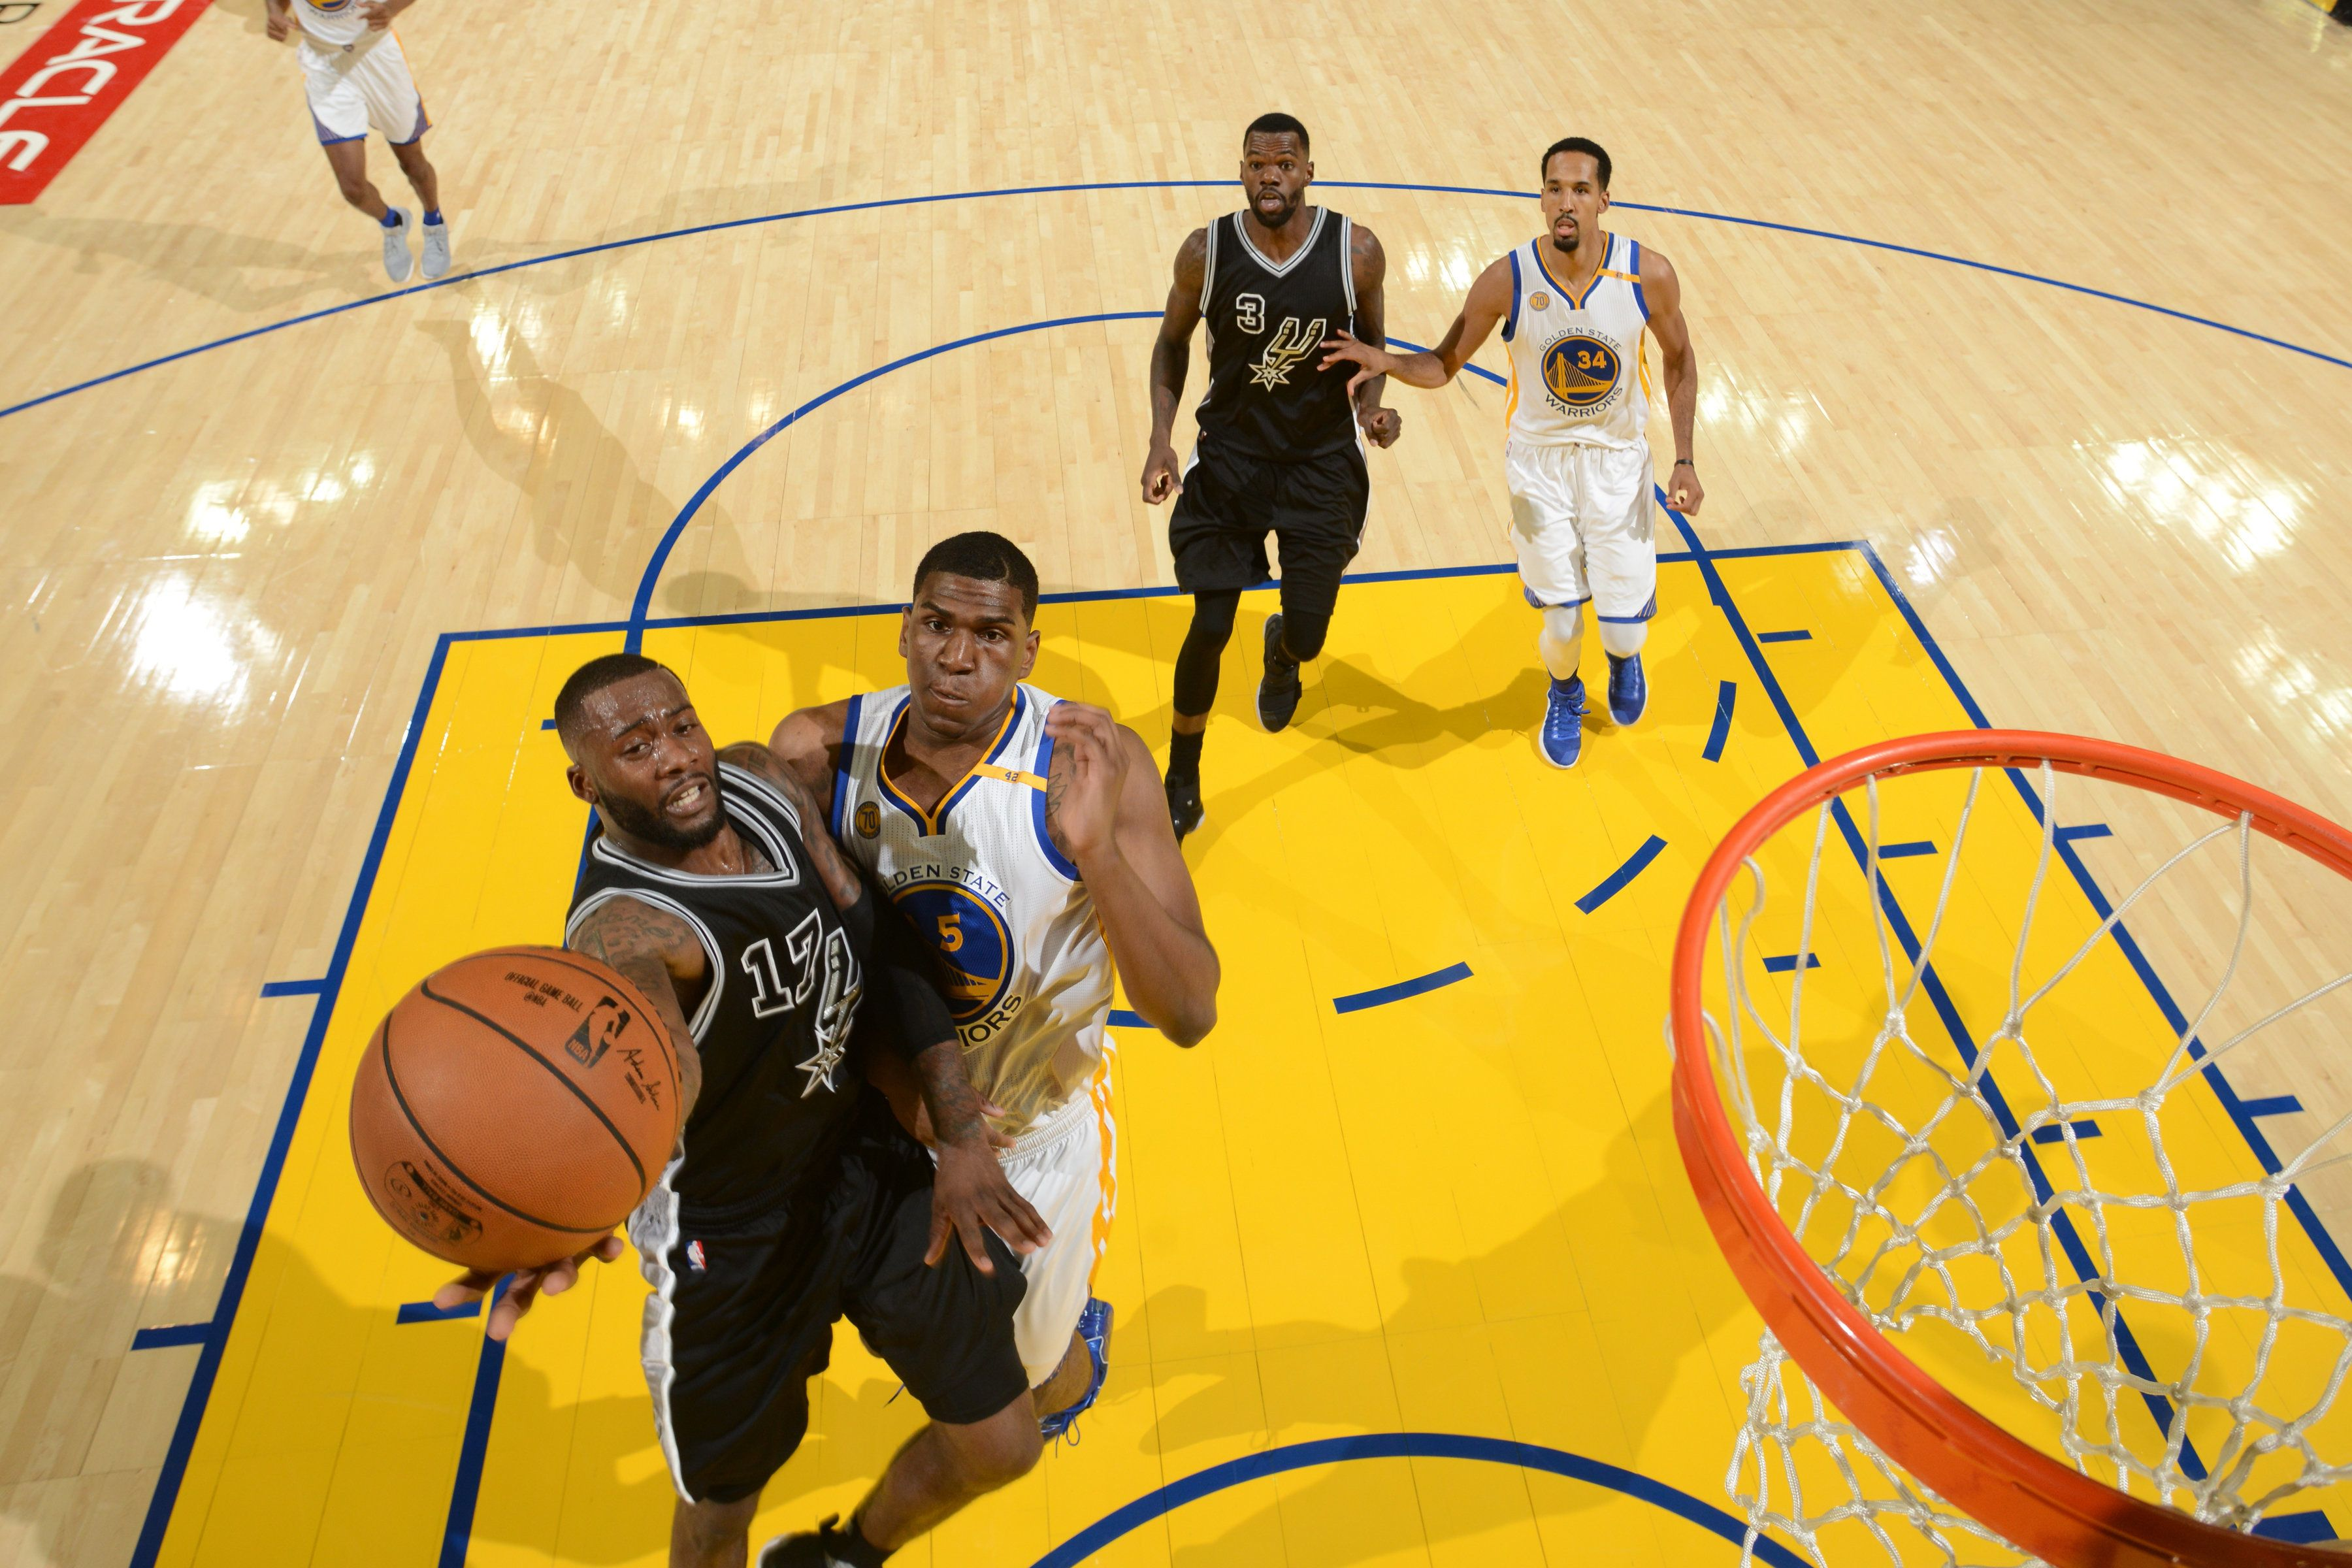 OAKLAND, CA - OCTOBER 25:  Jonathon Simmons #17 of the San Antonio Spurs drives to the basket against Kevon Looney #5 of the Golden State Warriors on October 25, 2016 at ORACLE Arena in Oakland, California. NOTE TO USER: User expressly acknowledges and agrees that, by downloading and or using this photograph, user is consenting to the terms and conditions of Getty Images License Agreement. Mandatory Copyright Notice: Copyright 2016 NBAE (Photo by Noah Graham/NBAE via Getty Images)